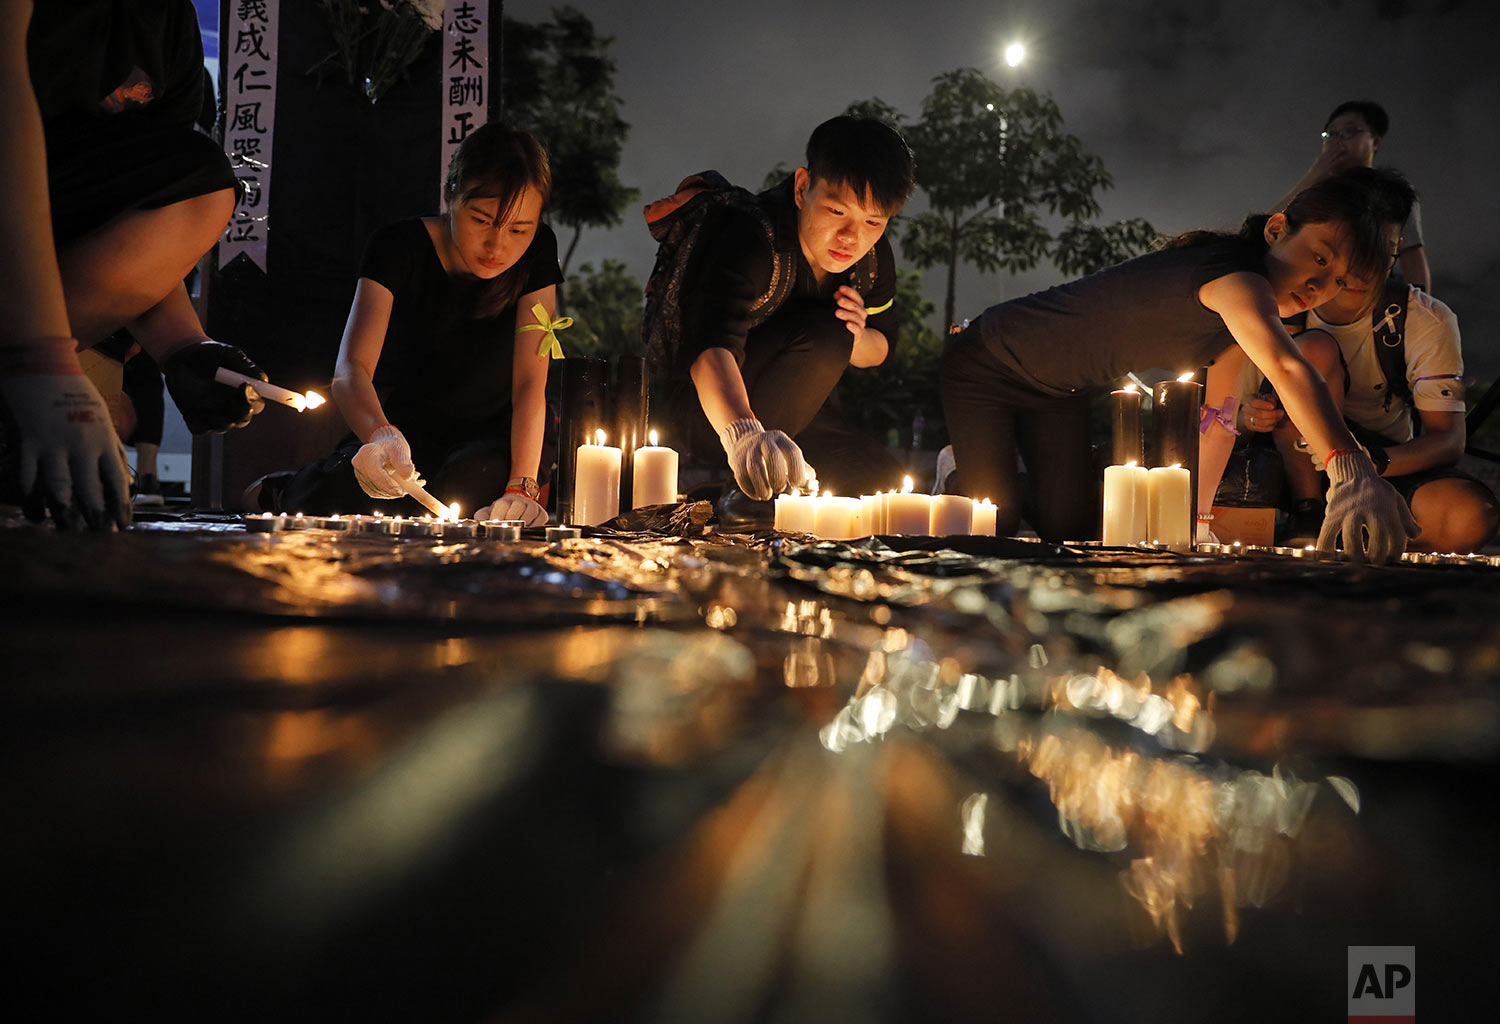 People light candles during a vigil to mourn the recent suicide of a woman due to the government's policy on an extradition bill, in Hong Kong, Saturday, July 6, 2019.  (AP Photo/Vincent Yu)